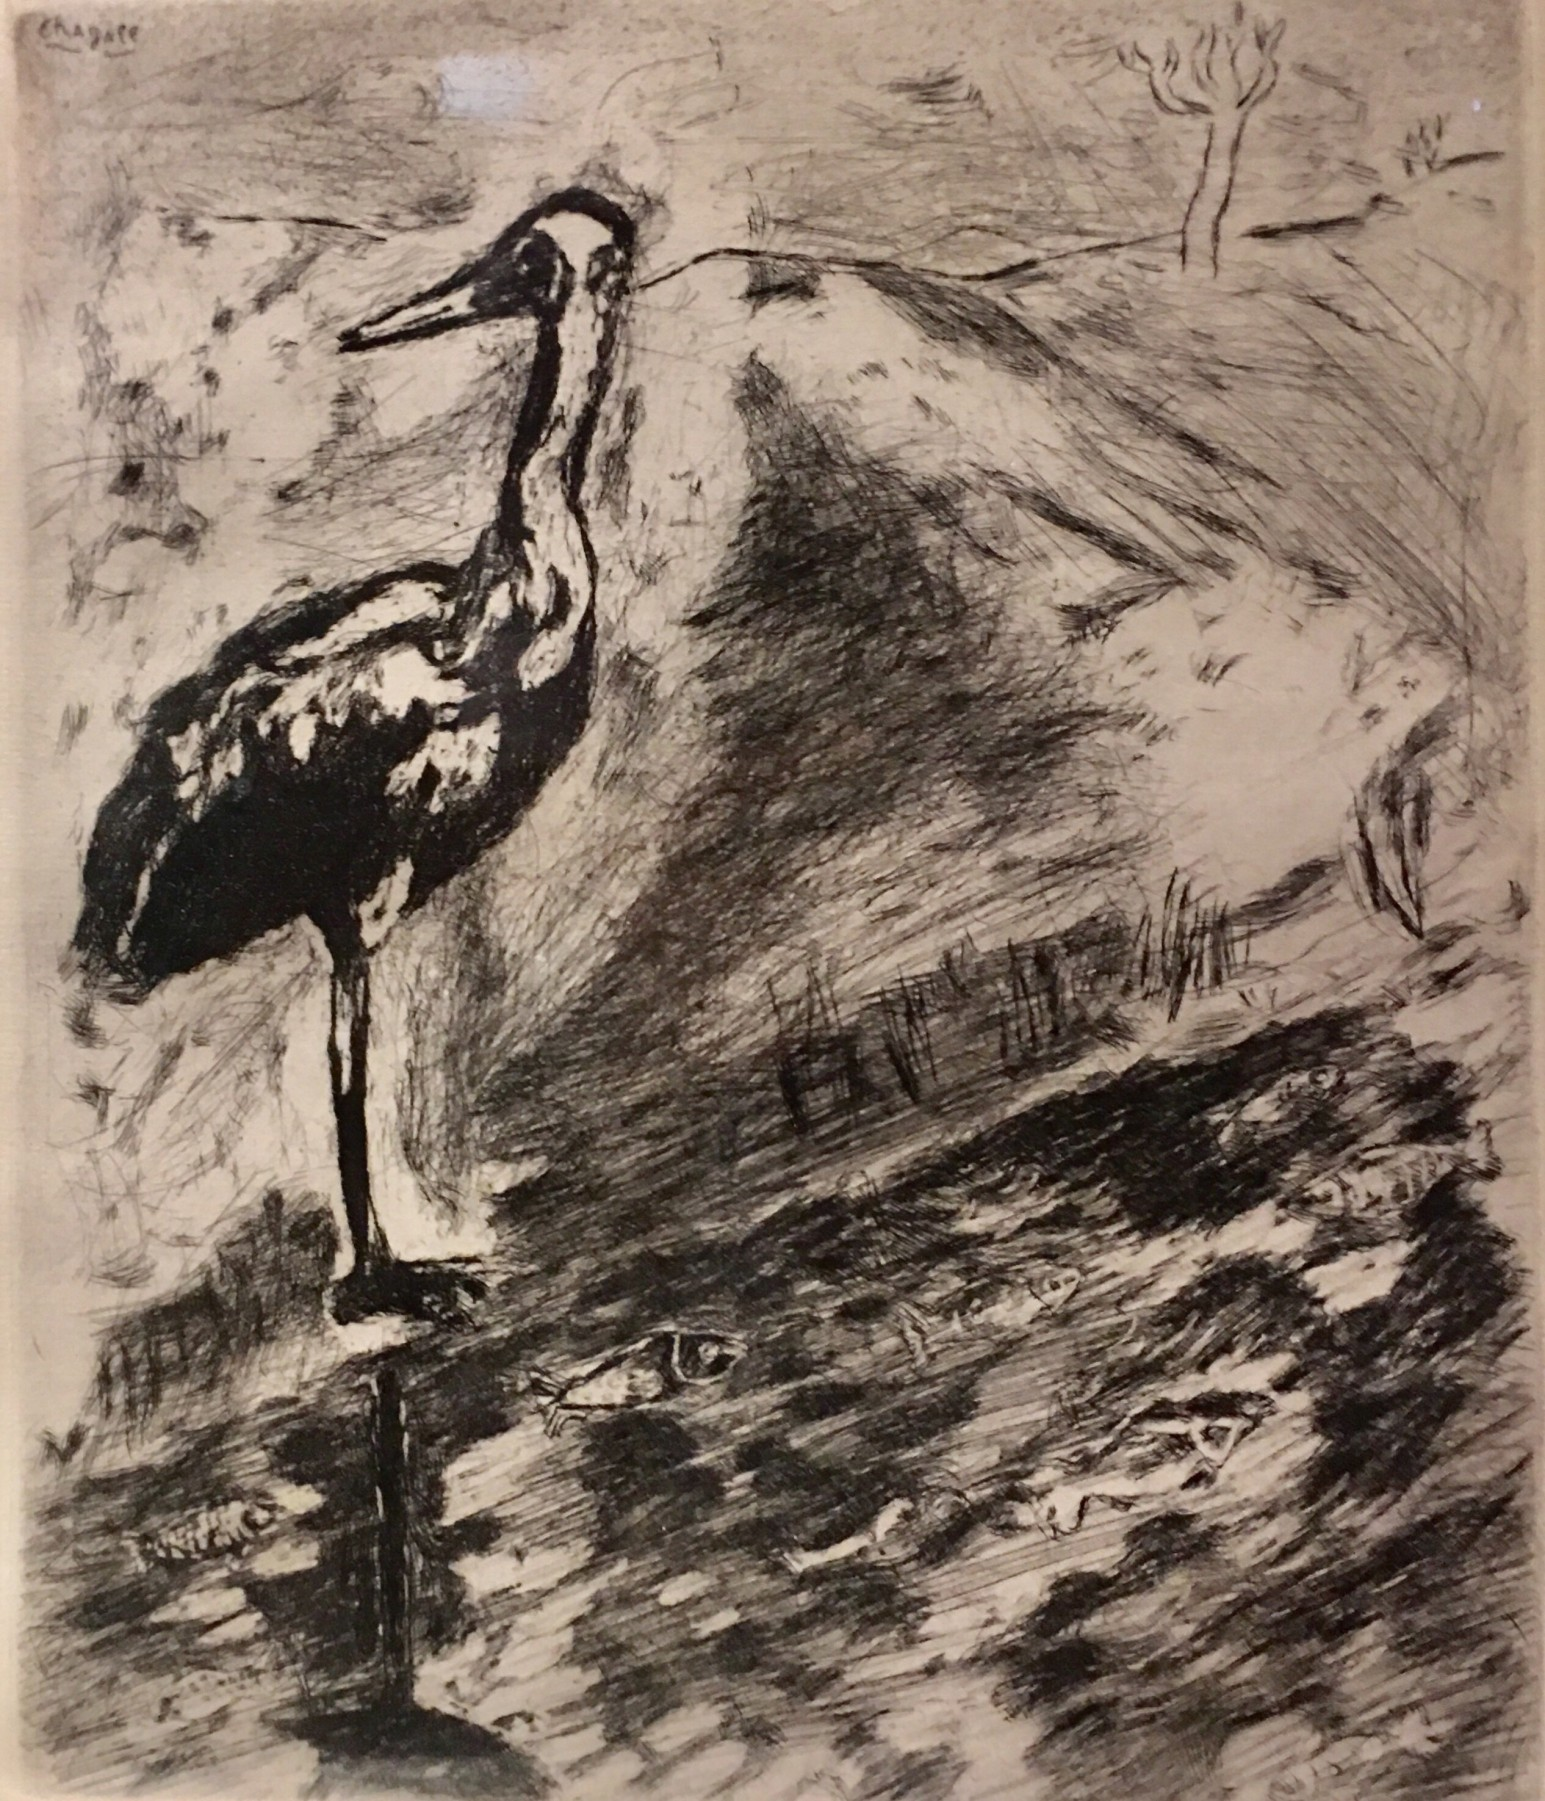 Le Heron From Jean De La Fontaine from Fables of Fontaine 1952